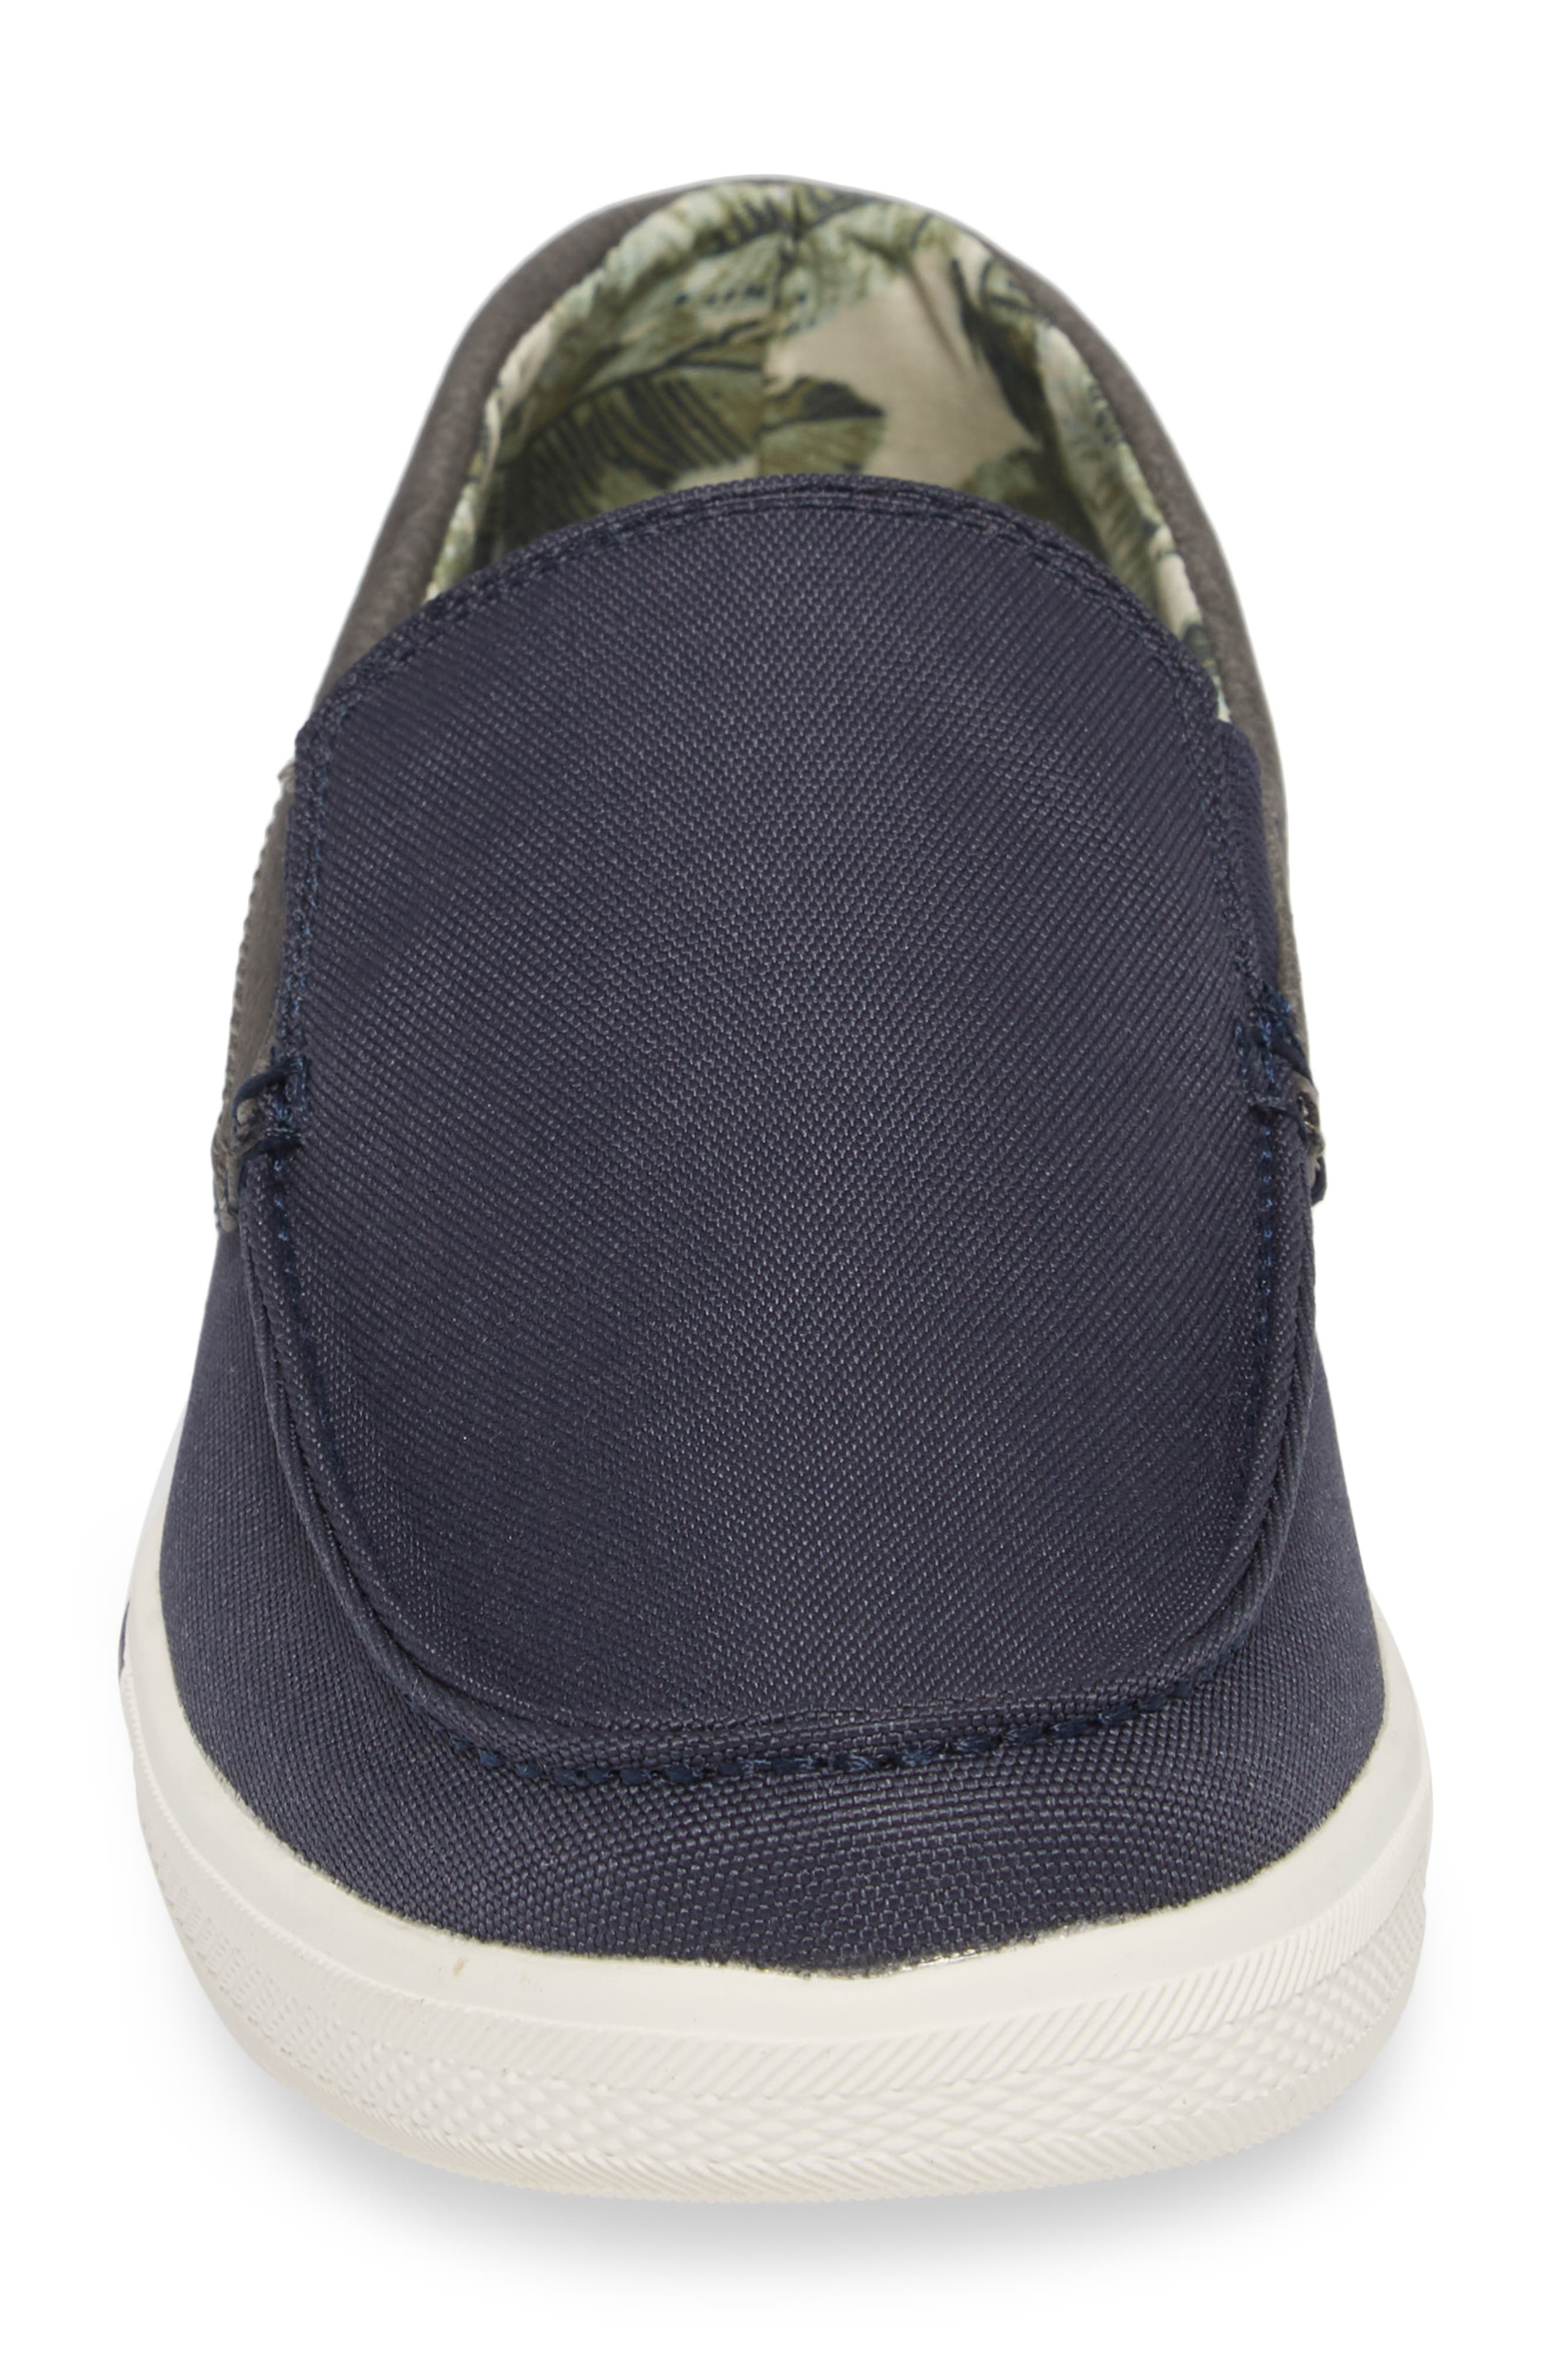 Calderon Loafer,                             Alternate thumbnail 4, color,                             Navy Canvas/ Leather